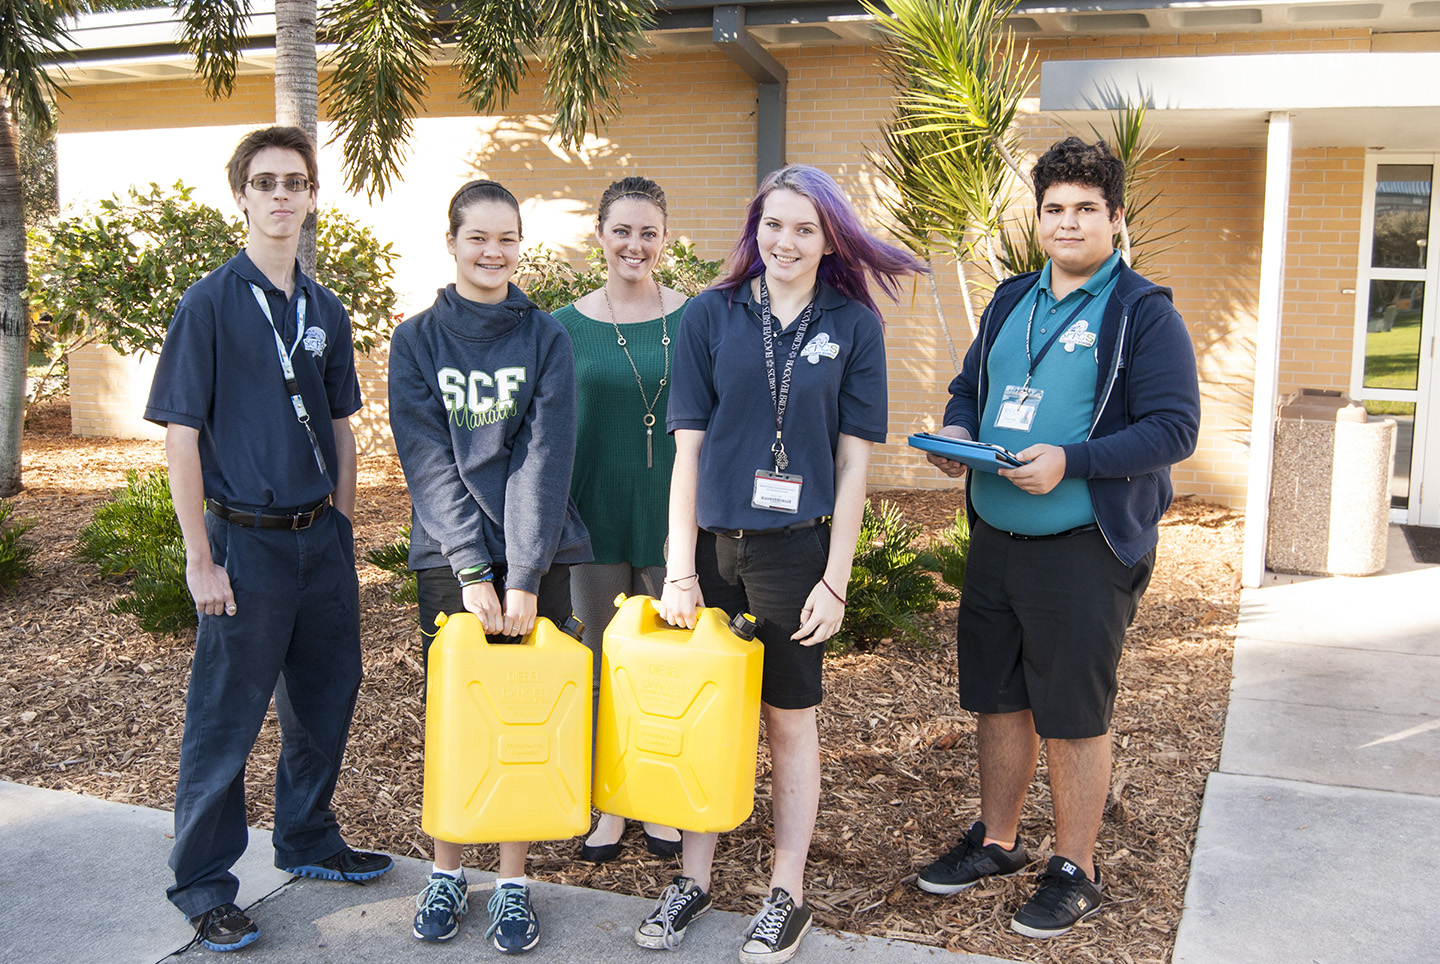 State College of Florida Collegiate School 8th-graders Eric Long, Kea Kamiya, Julie Stivers and Ismael Ruiz with teacher Hannah Cochrane (in back) show the cans of water students carried with them to class.